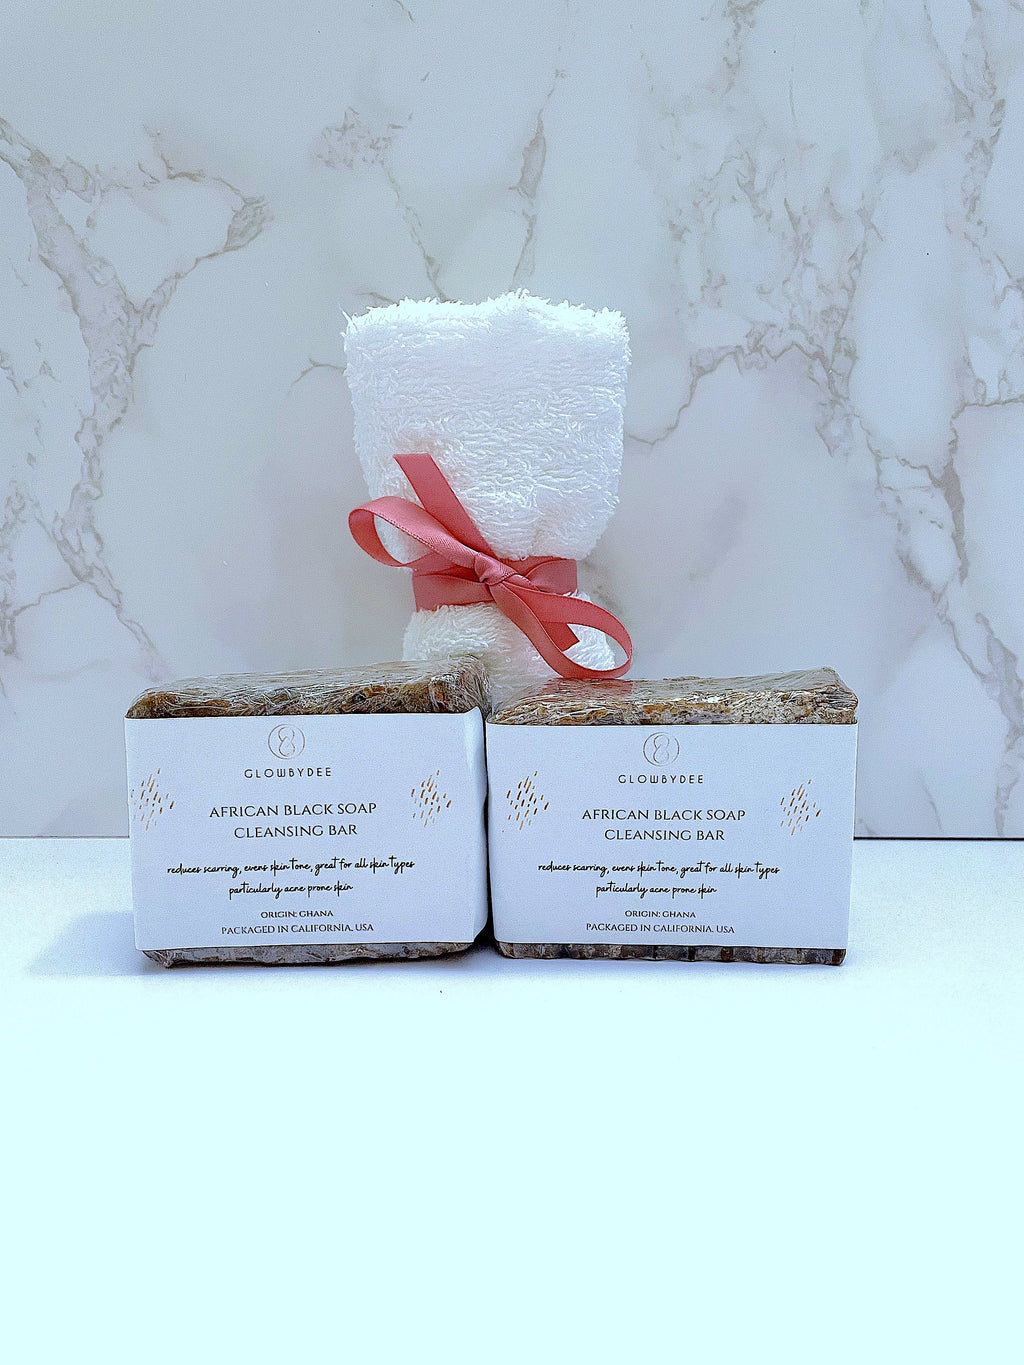 African Black Soap Cleansing Bar